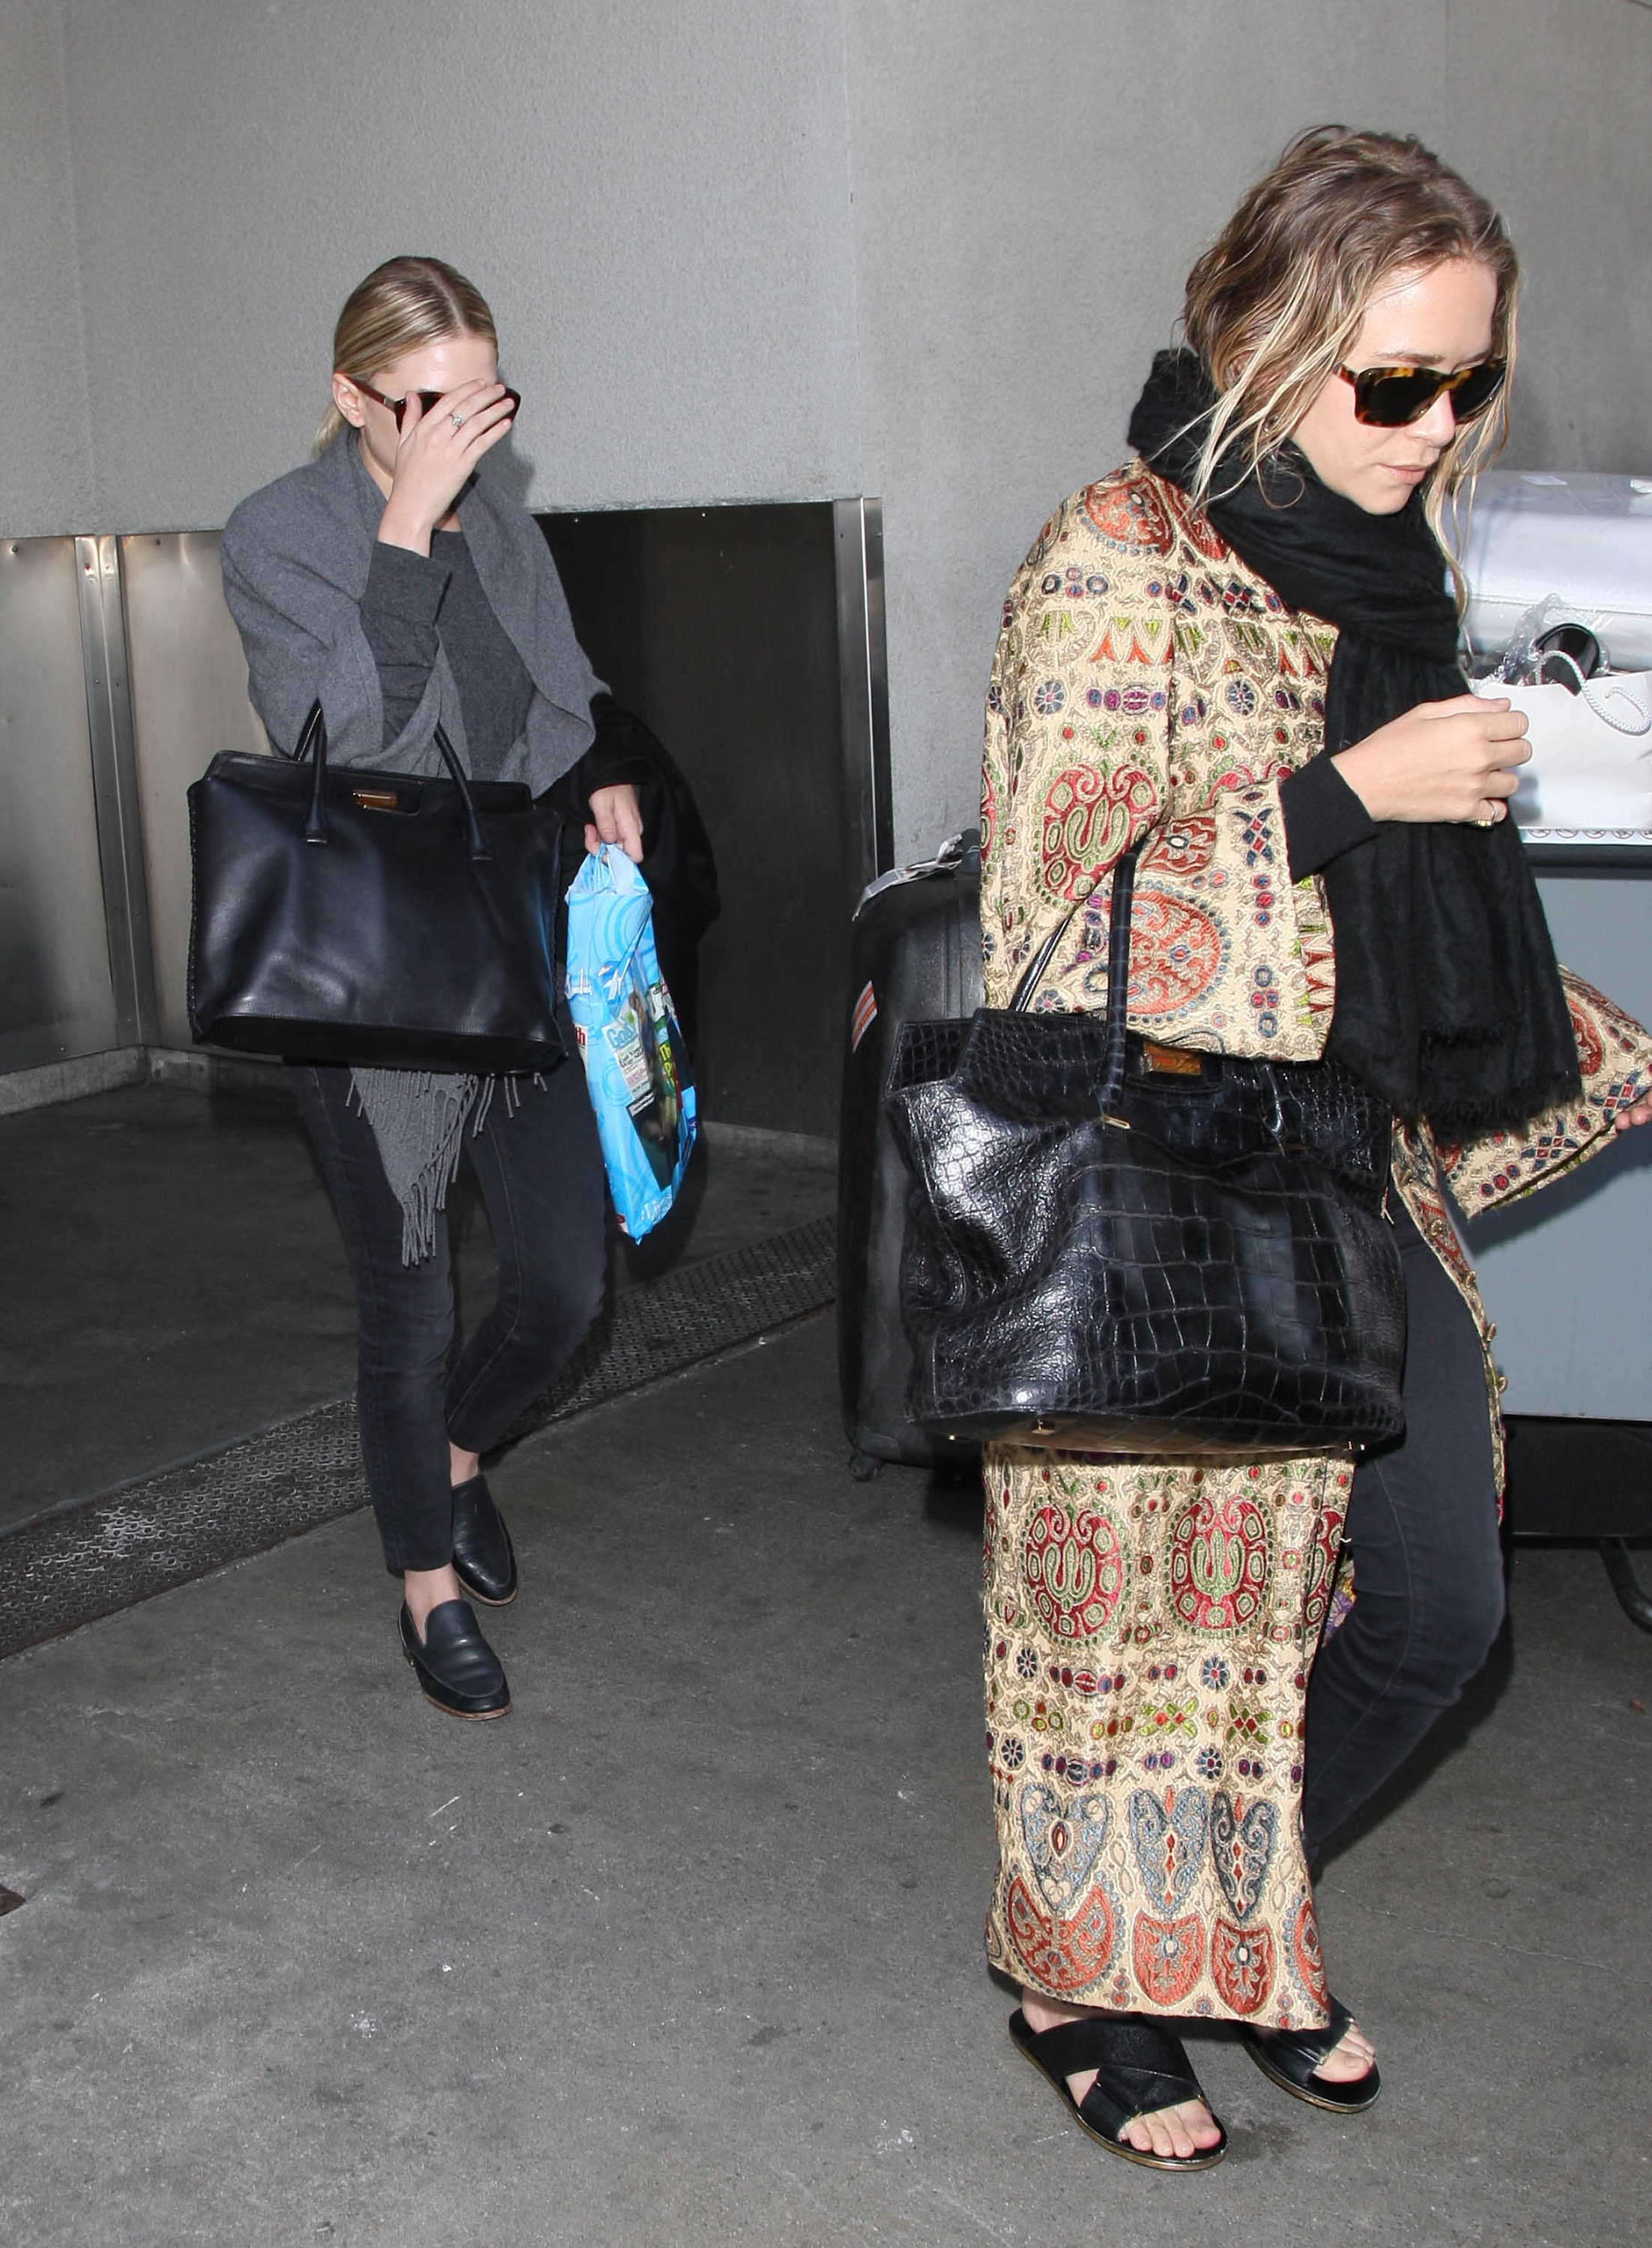 Behold the 'Olsen Twins Hiding From the Paparazzi' museum exhibit plan